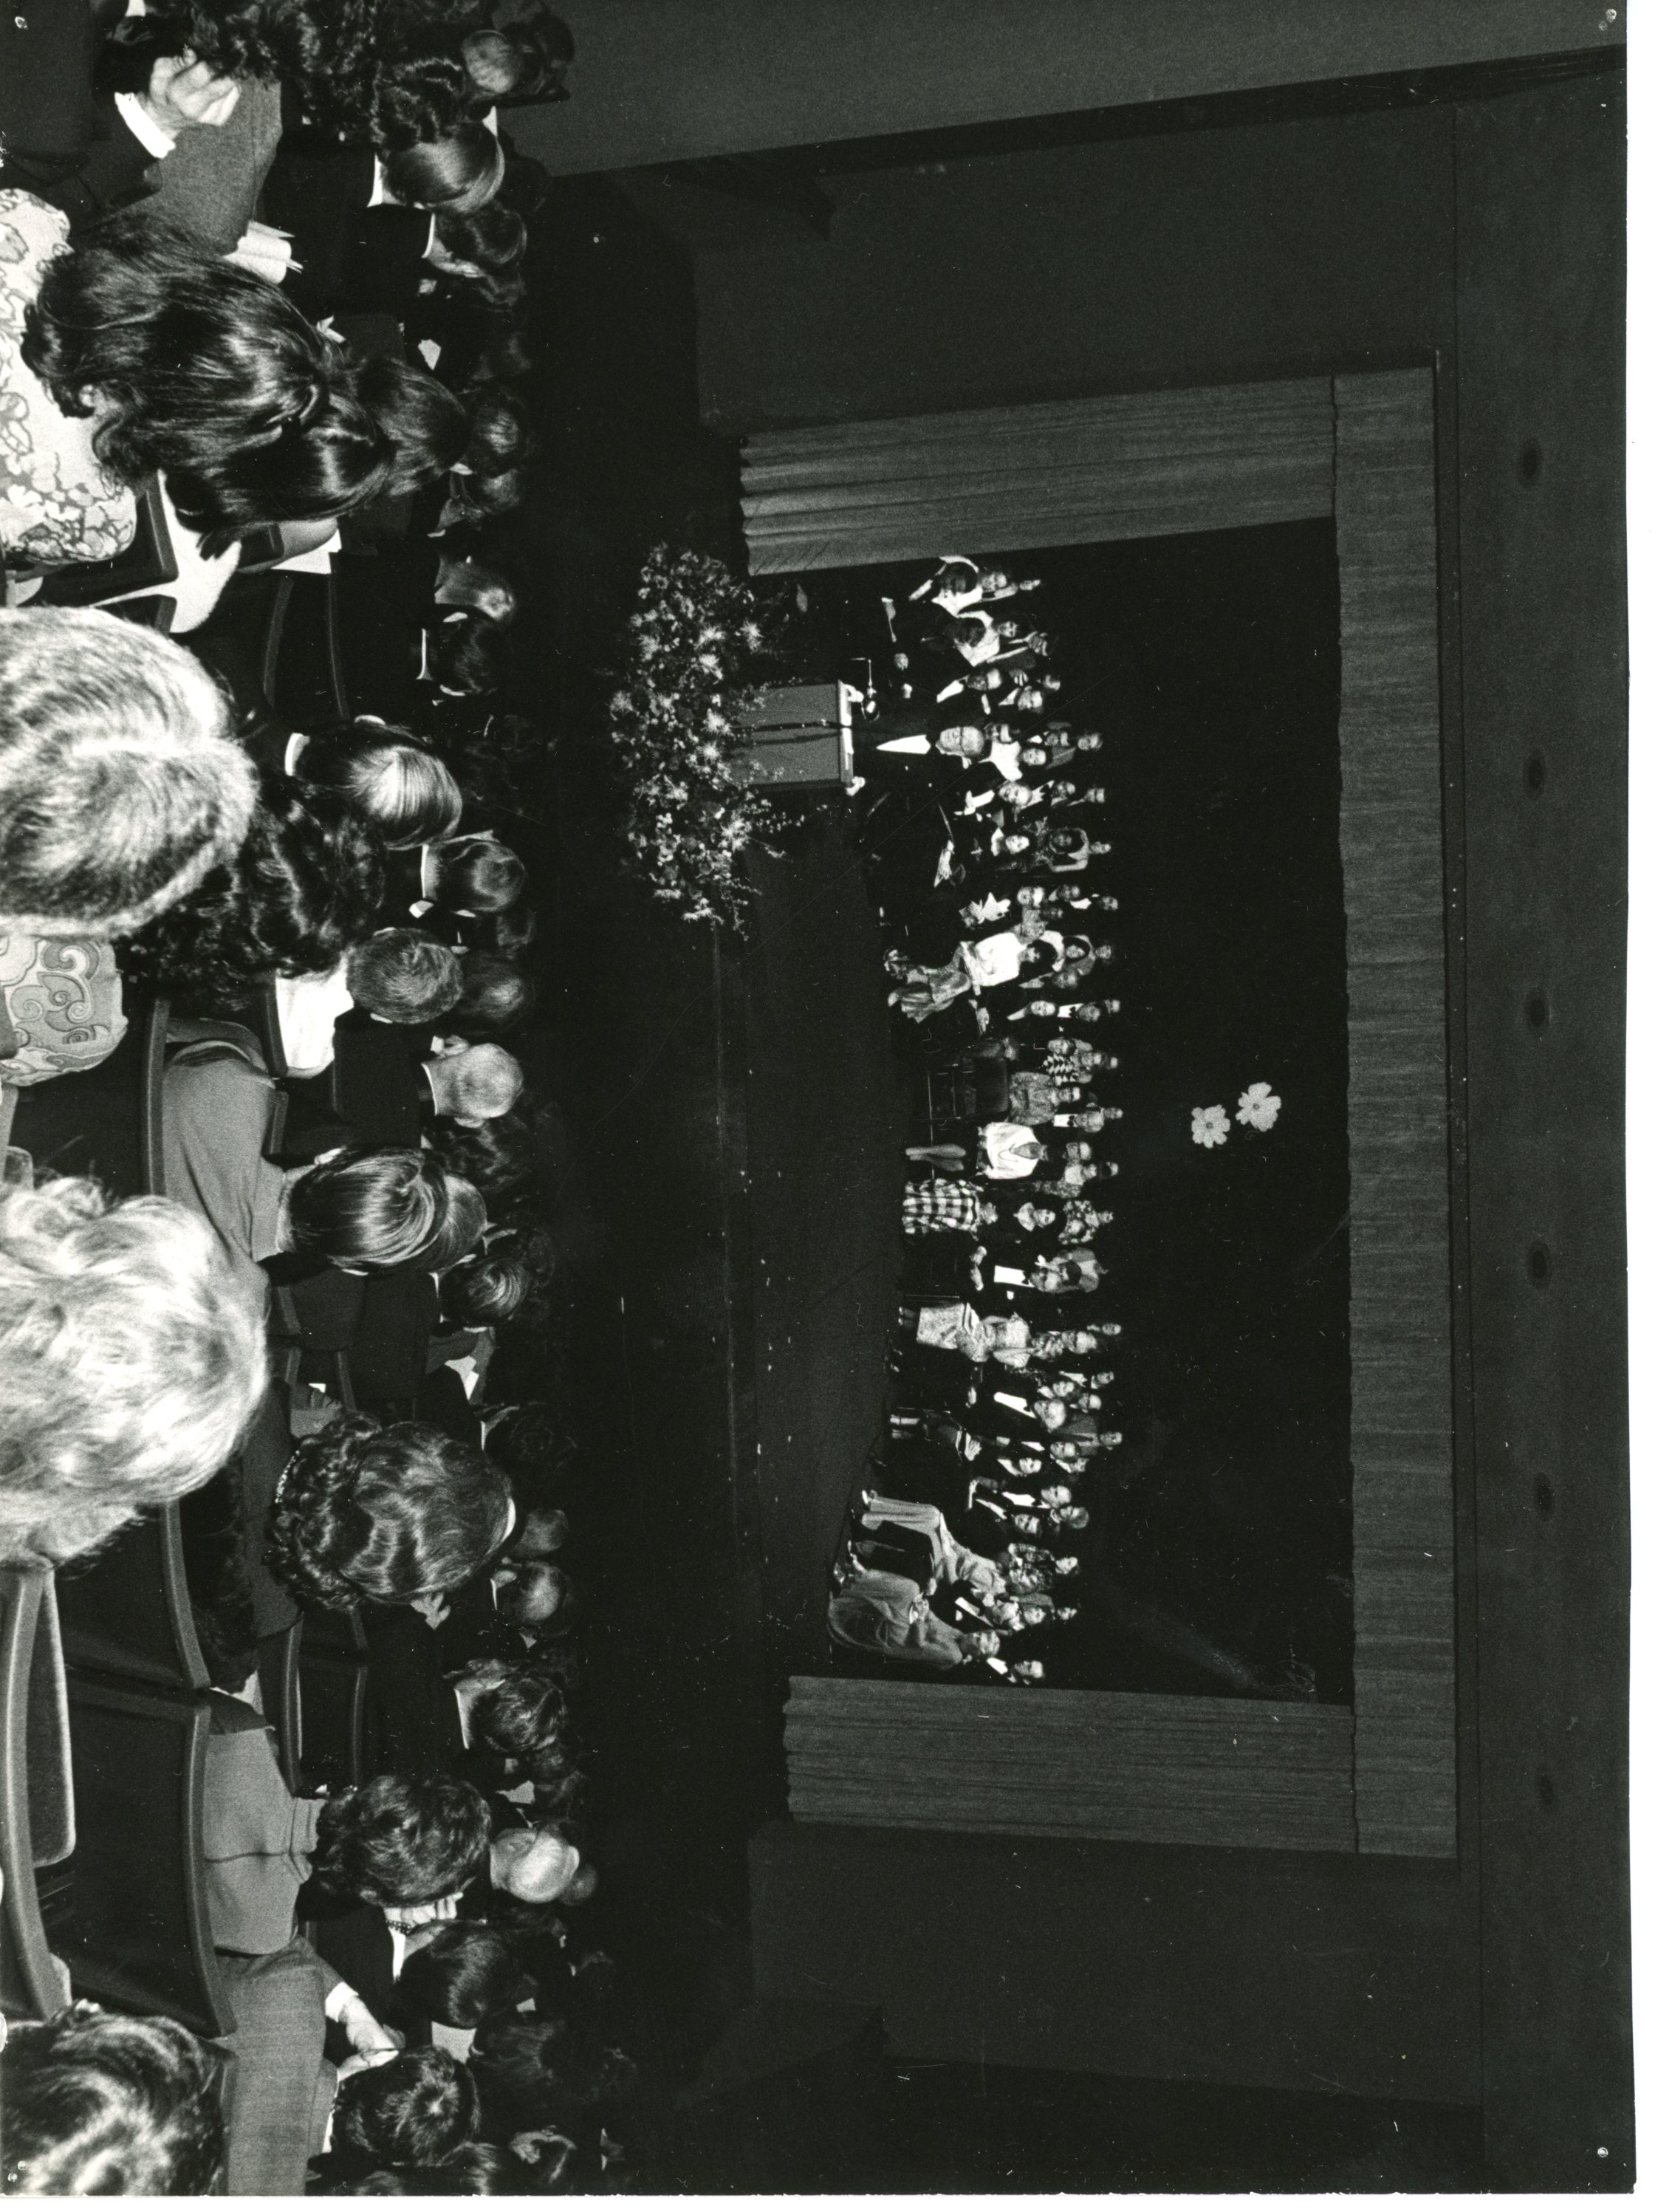 Photo taken from back of theatre showing audience and beyond them a crowd sitting on a stage.